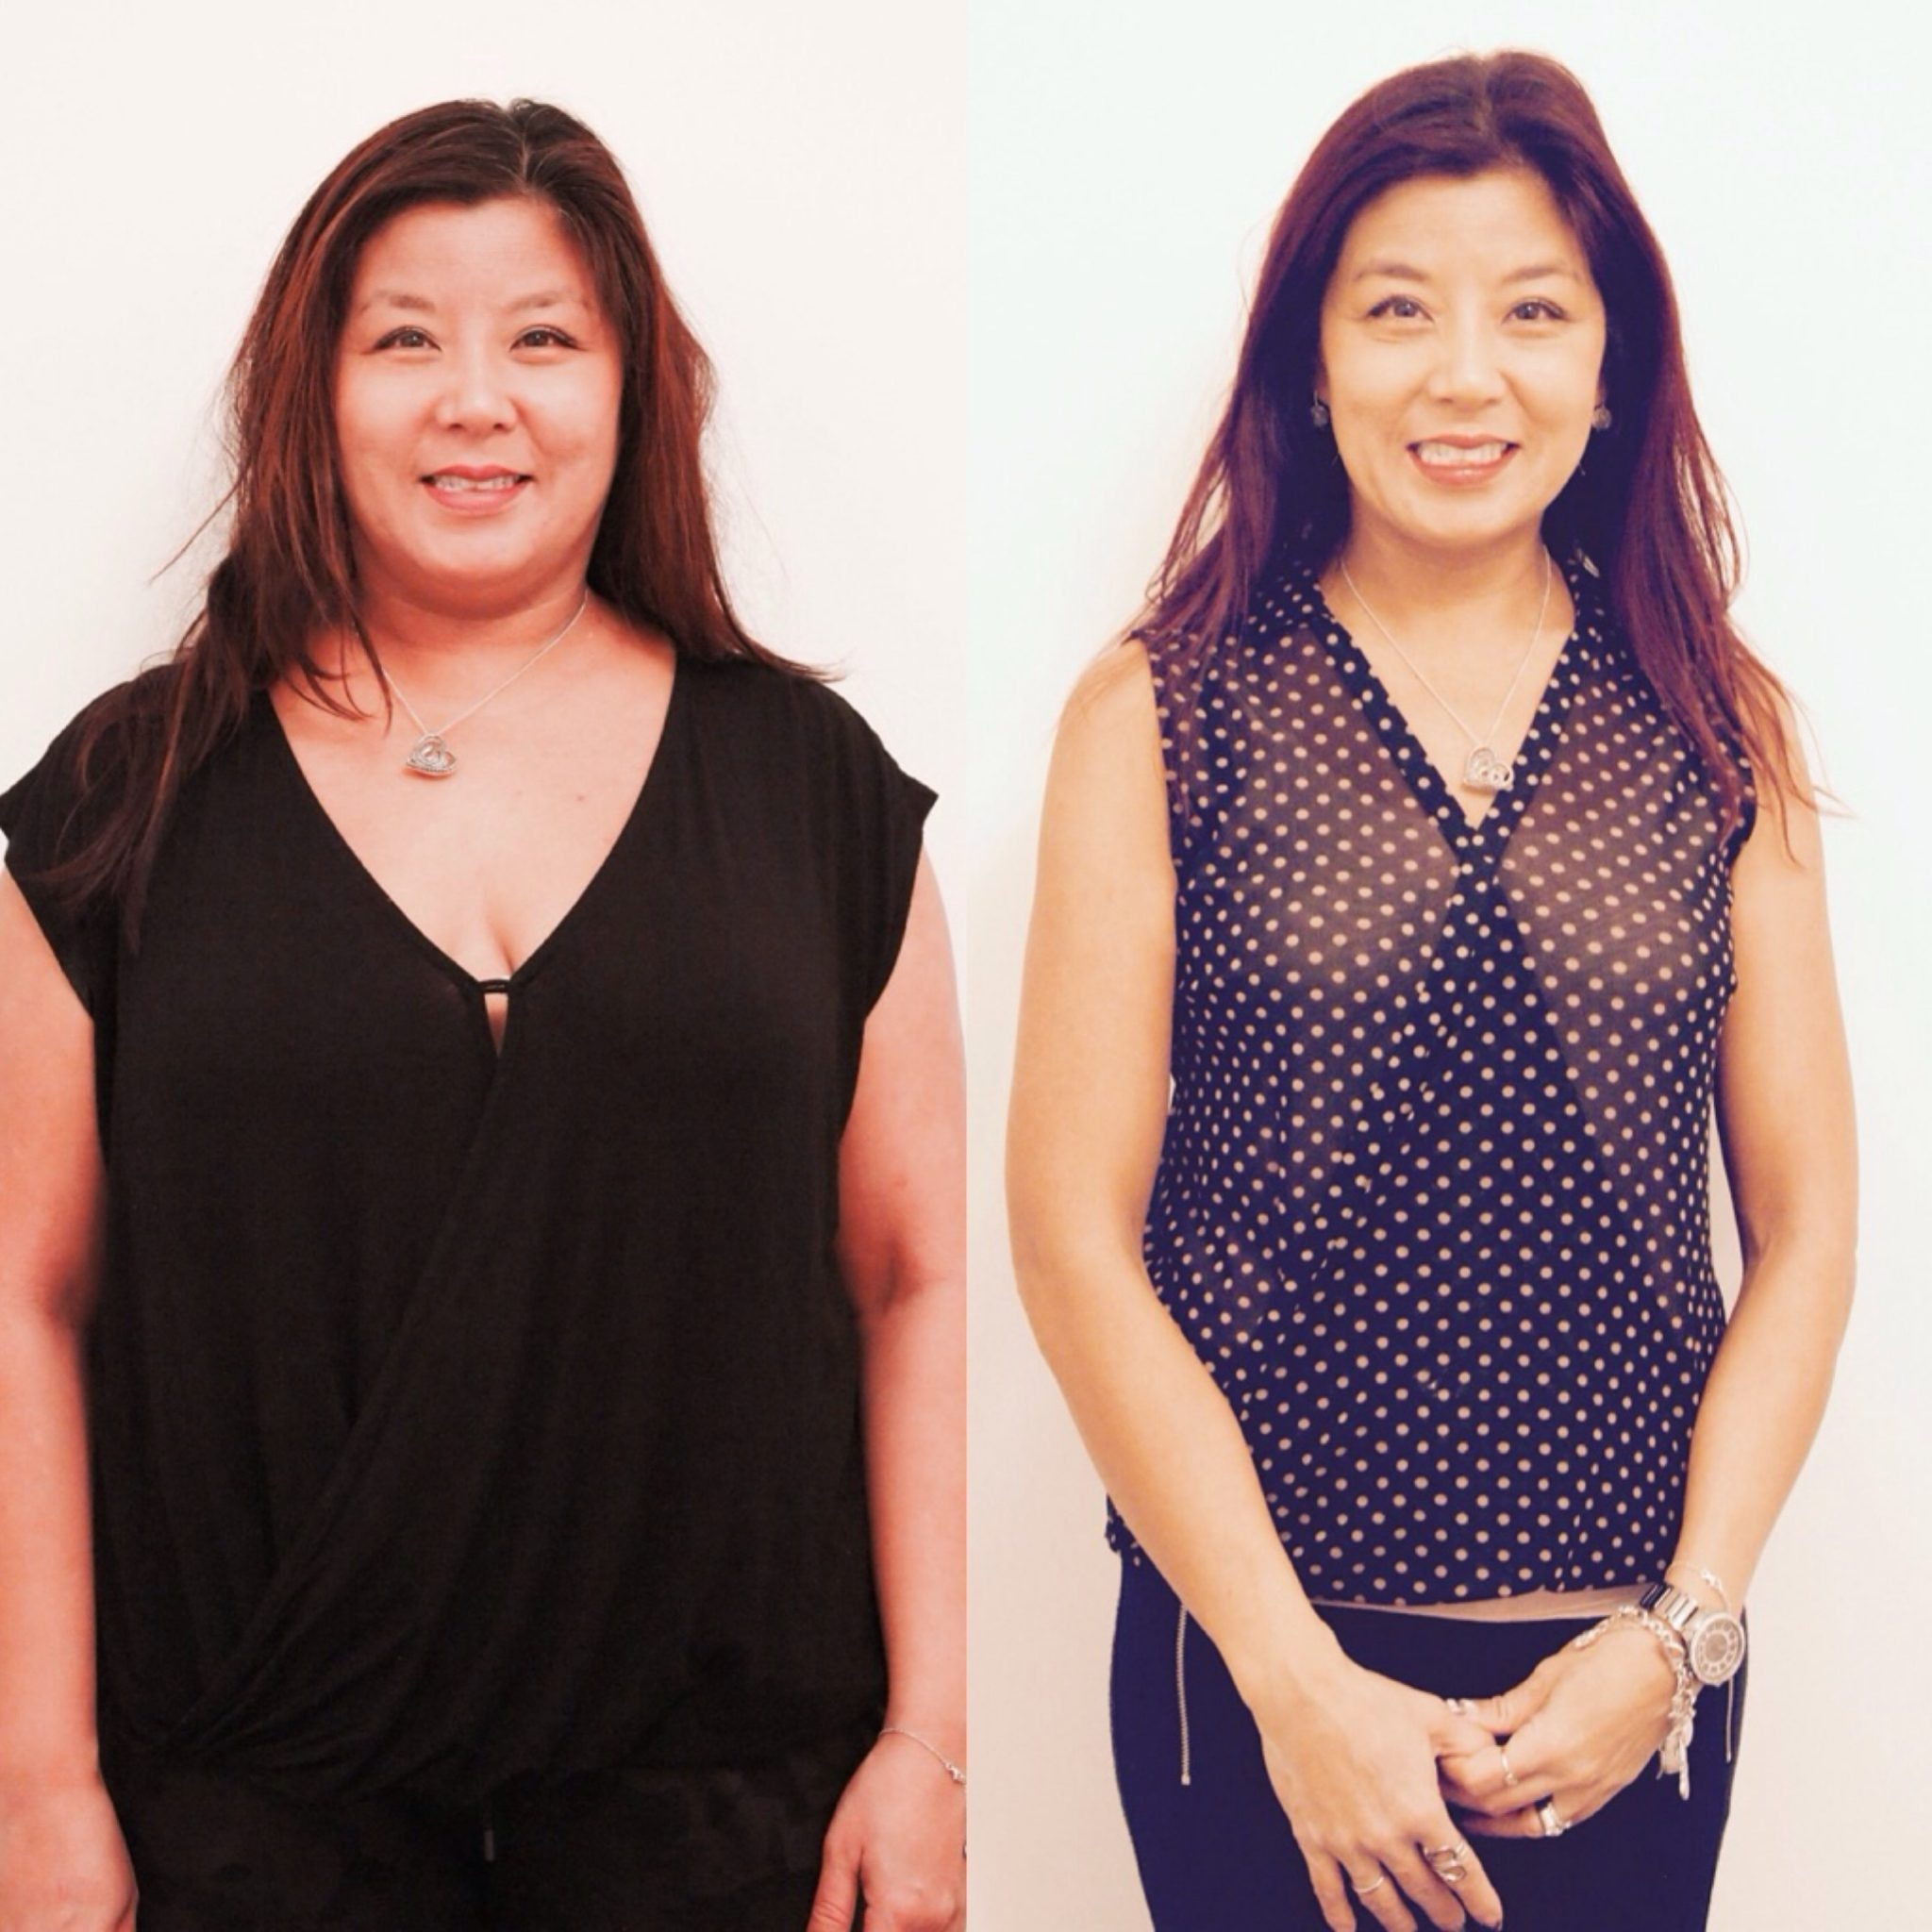 Tami lost 80 lbs at Vital Body